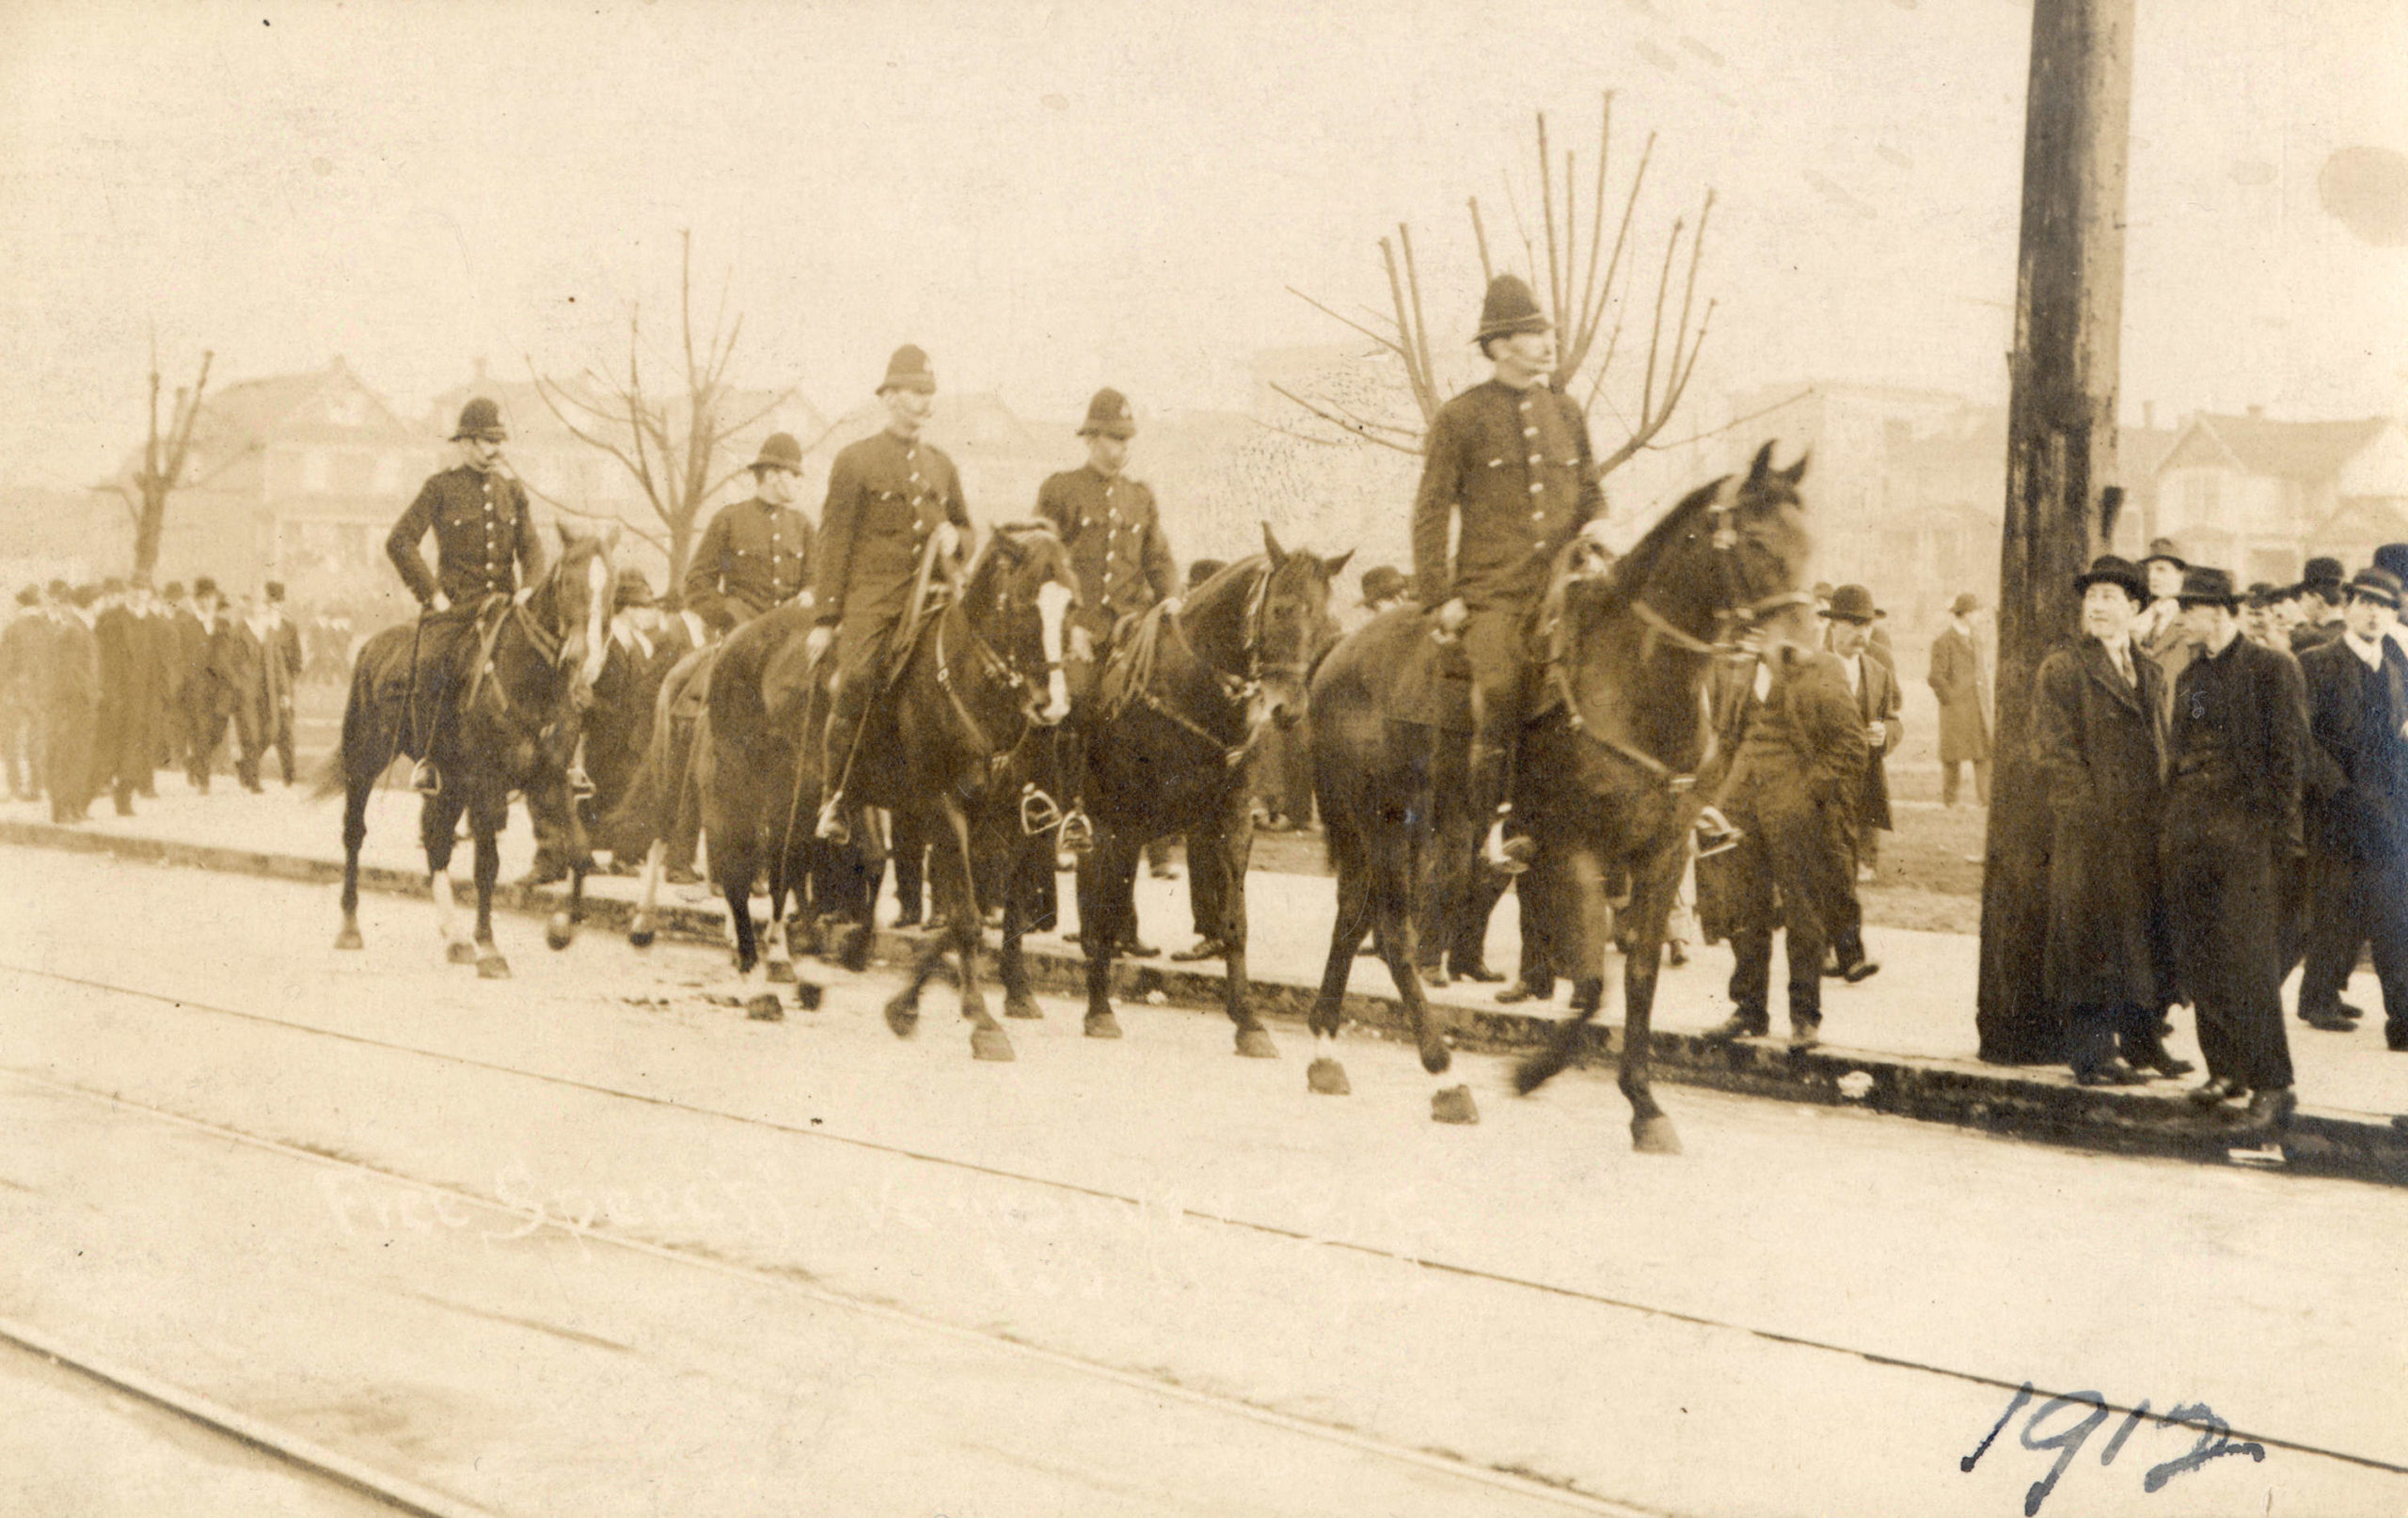 Five policemen ride horses down a city street with people gathered on the sidewalks.